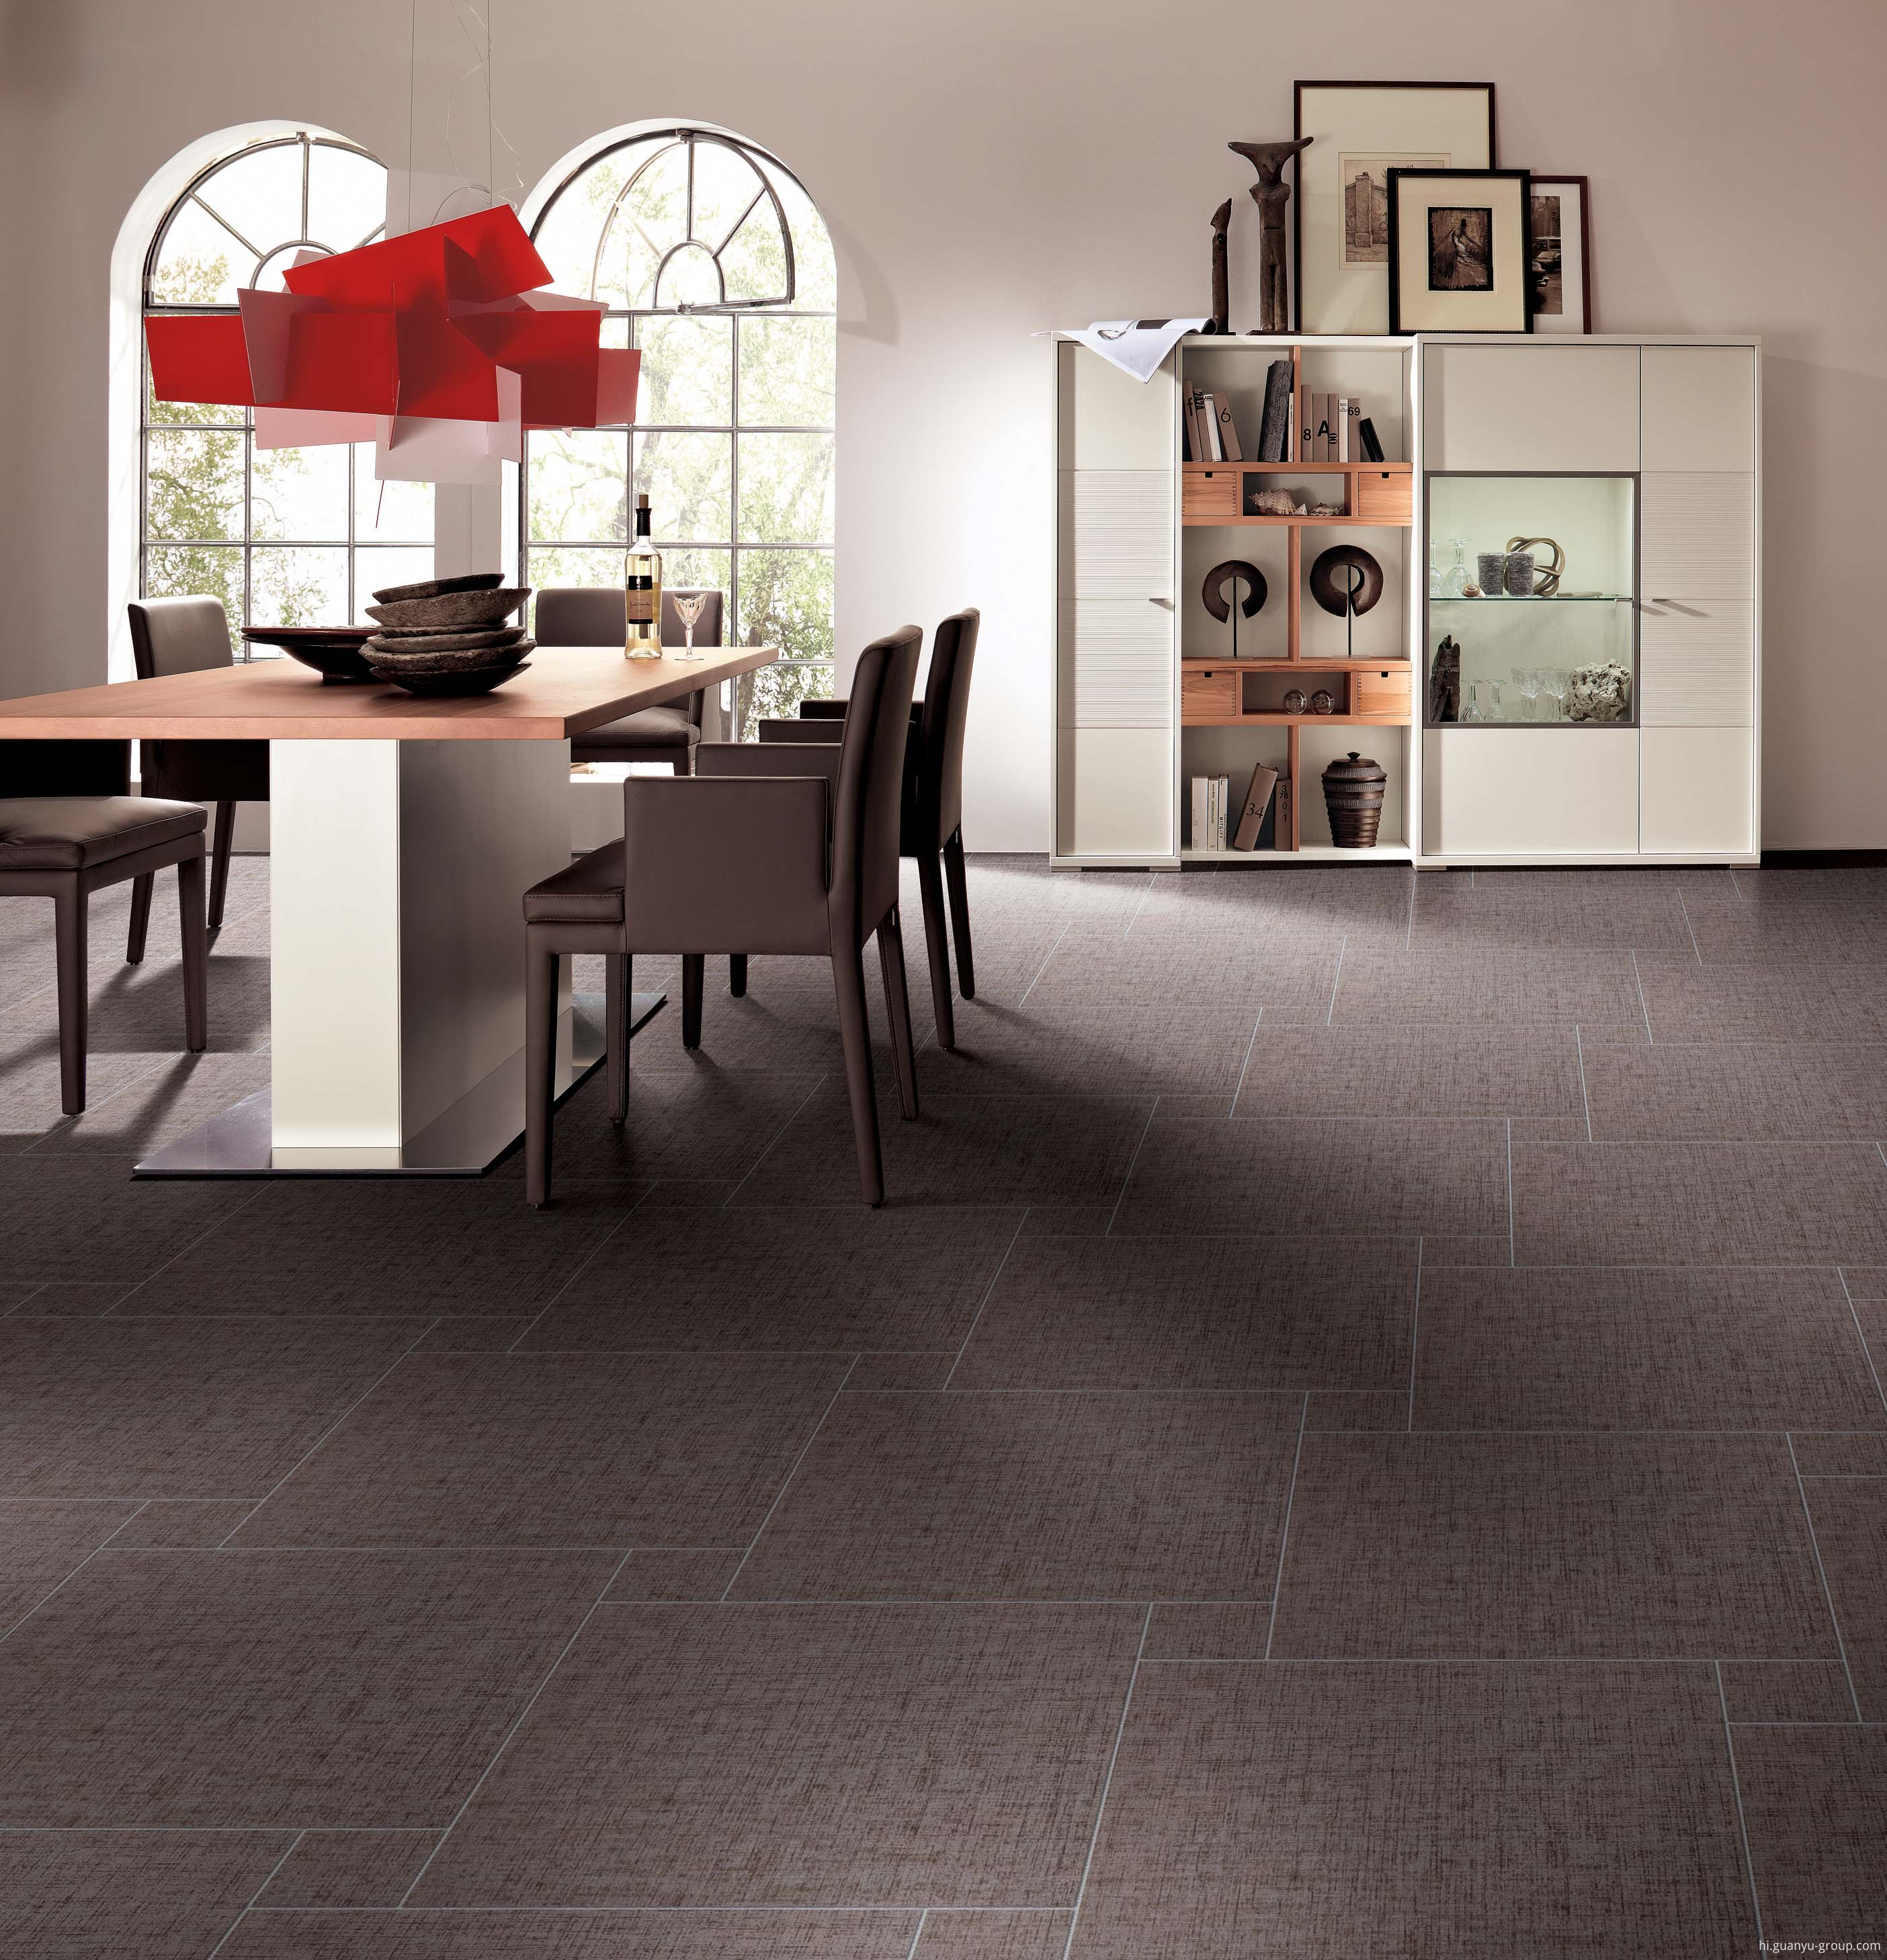 Brown Brocade Non-Slip Porcelain Tile